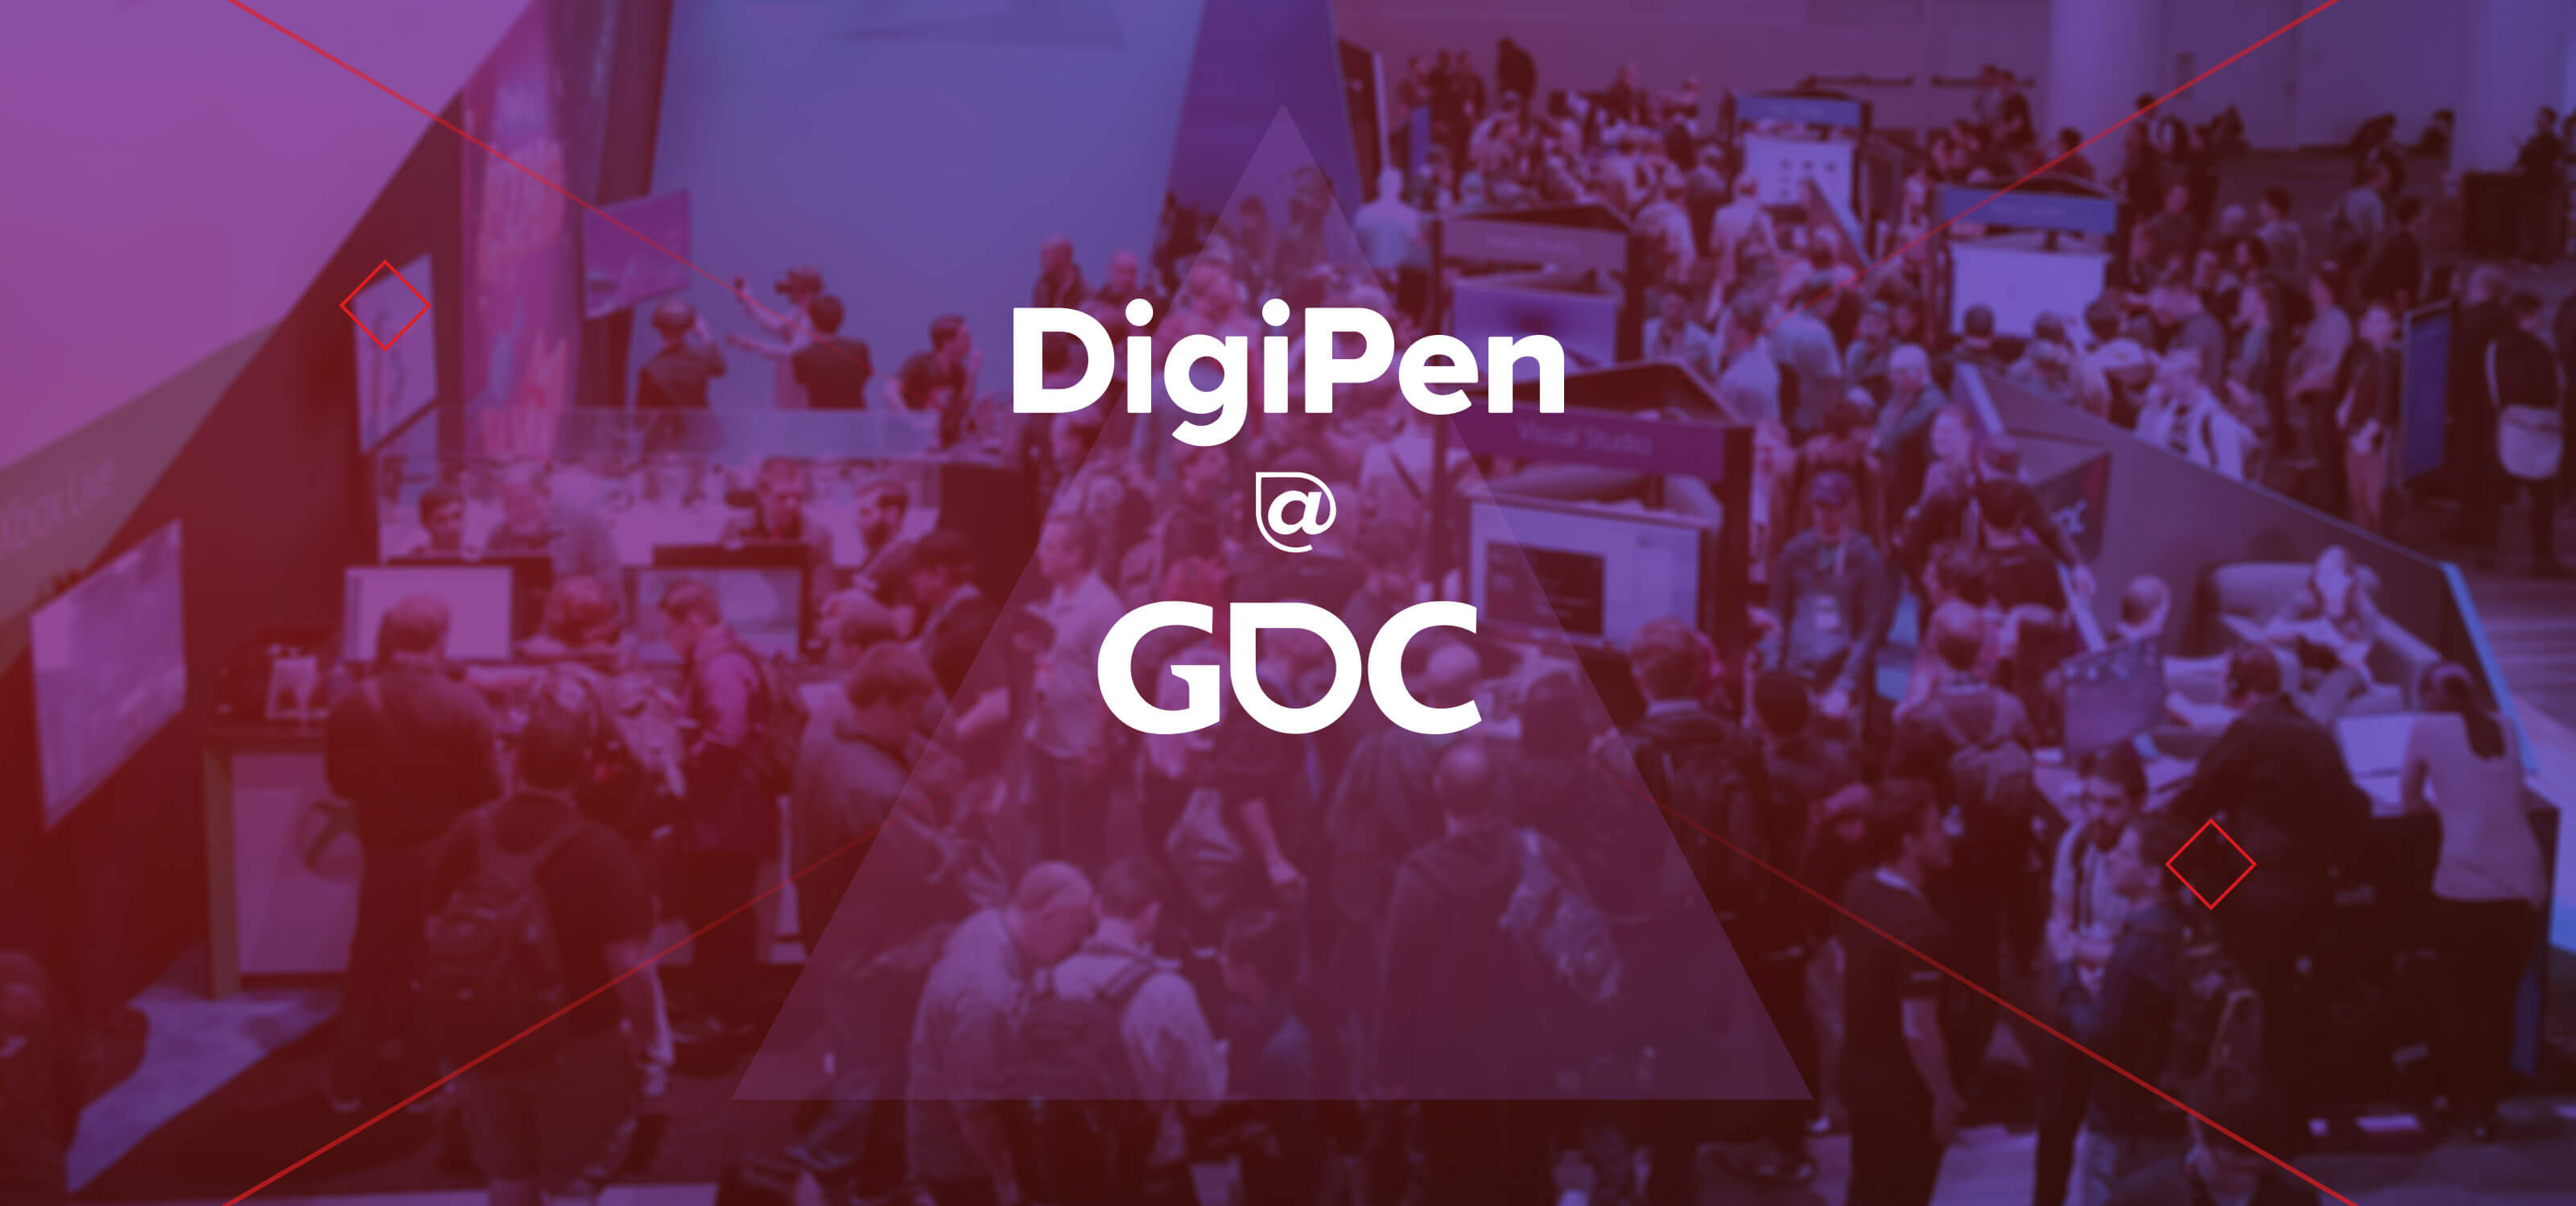 The GDC logo overlaid on a scene from the 2018 Game Developers Conference